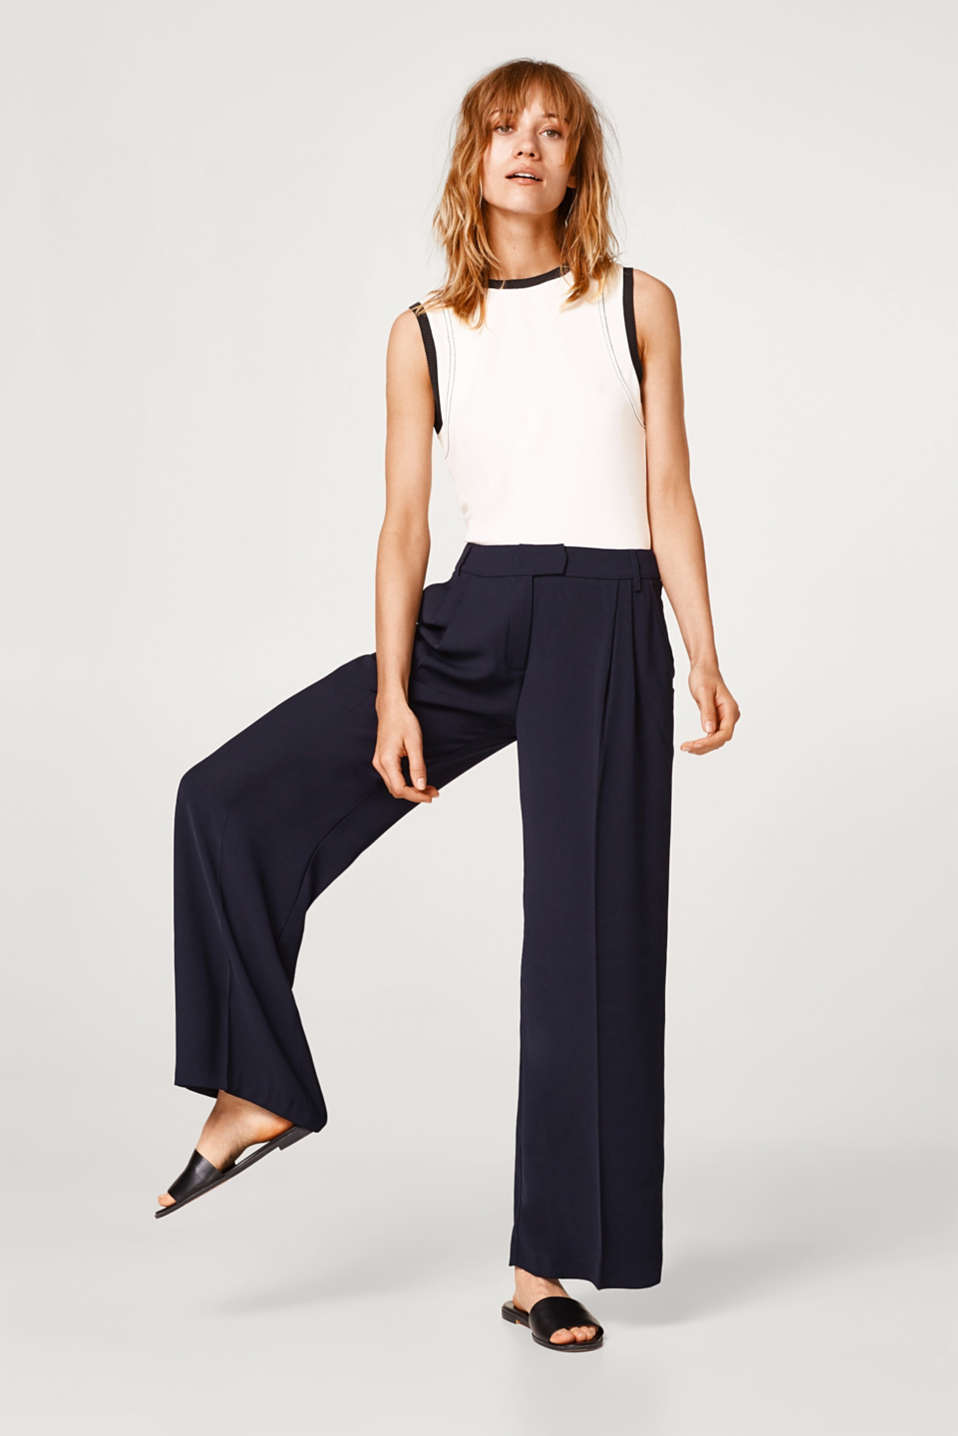 FEMININE CREPE mix + match stretch palazzo trousers